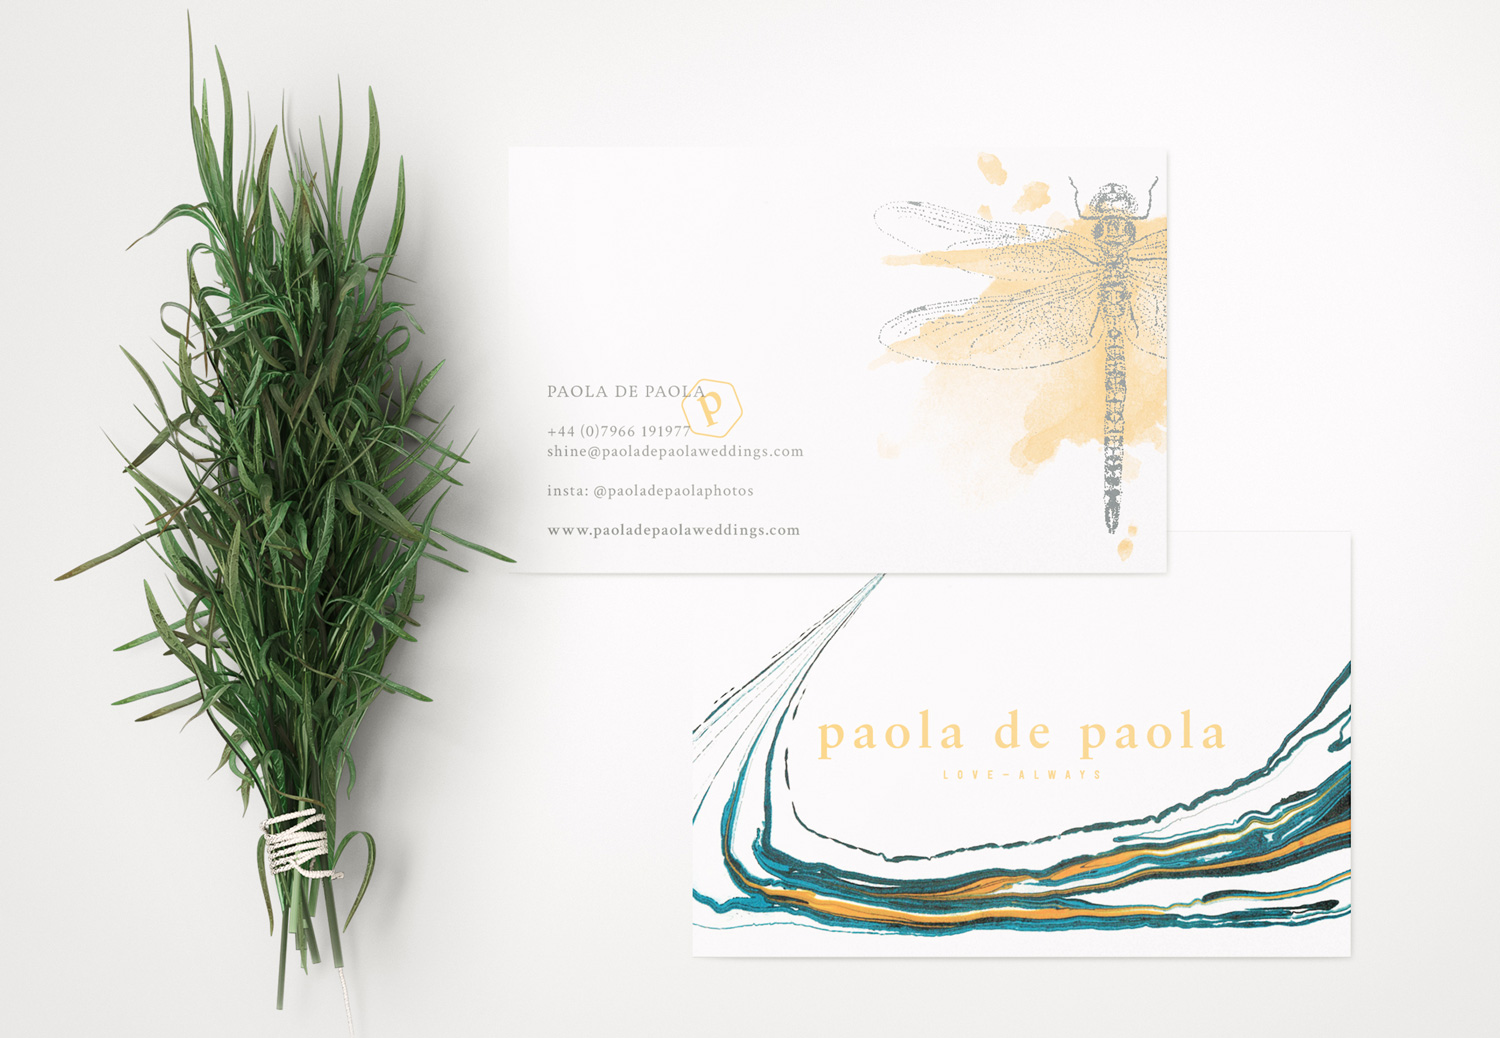 Paola De Paola Wedding Photography, logo design and brand identity by Ditto Creative, boutique branding agency Kent